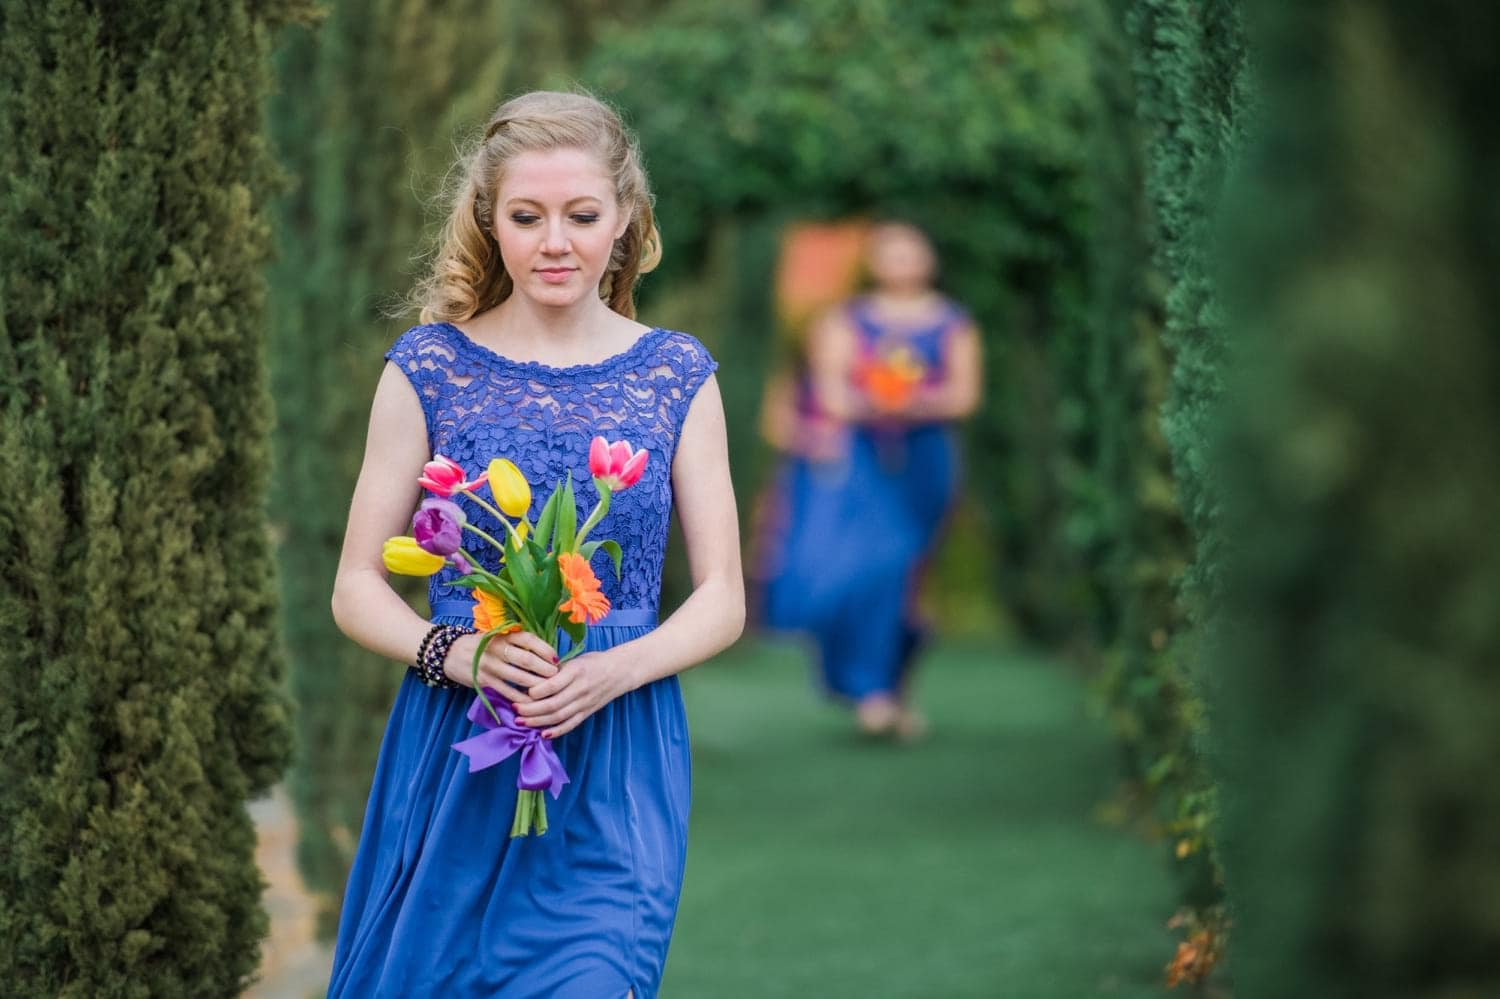 Bridesmaid walking to the ceremony with her bouquet.